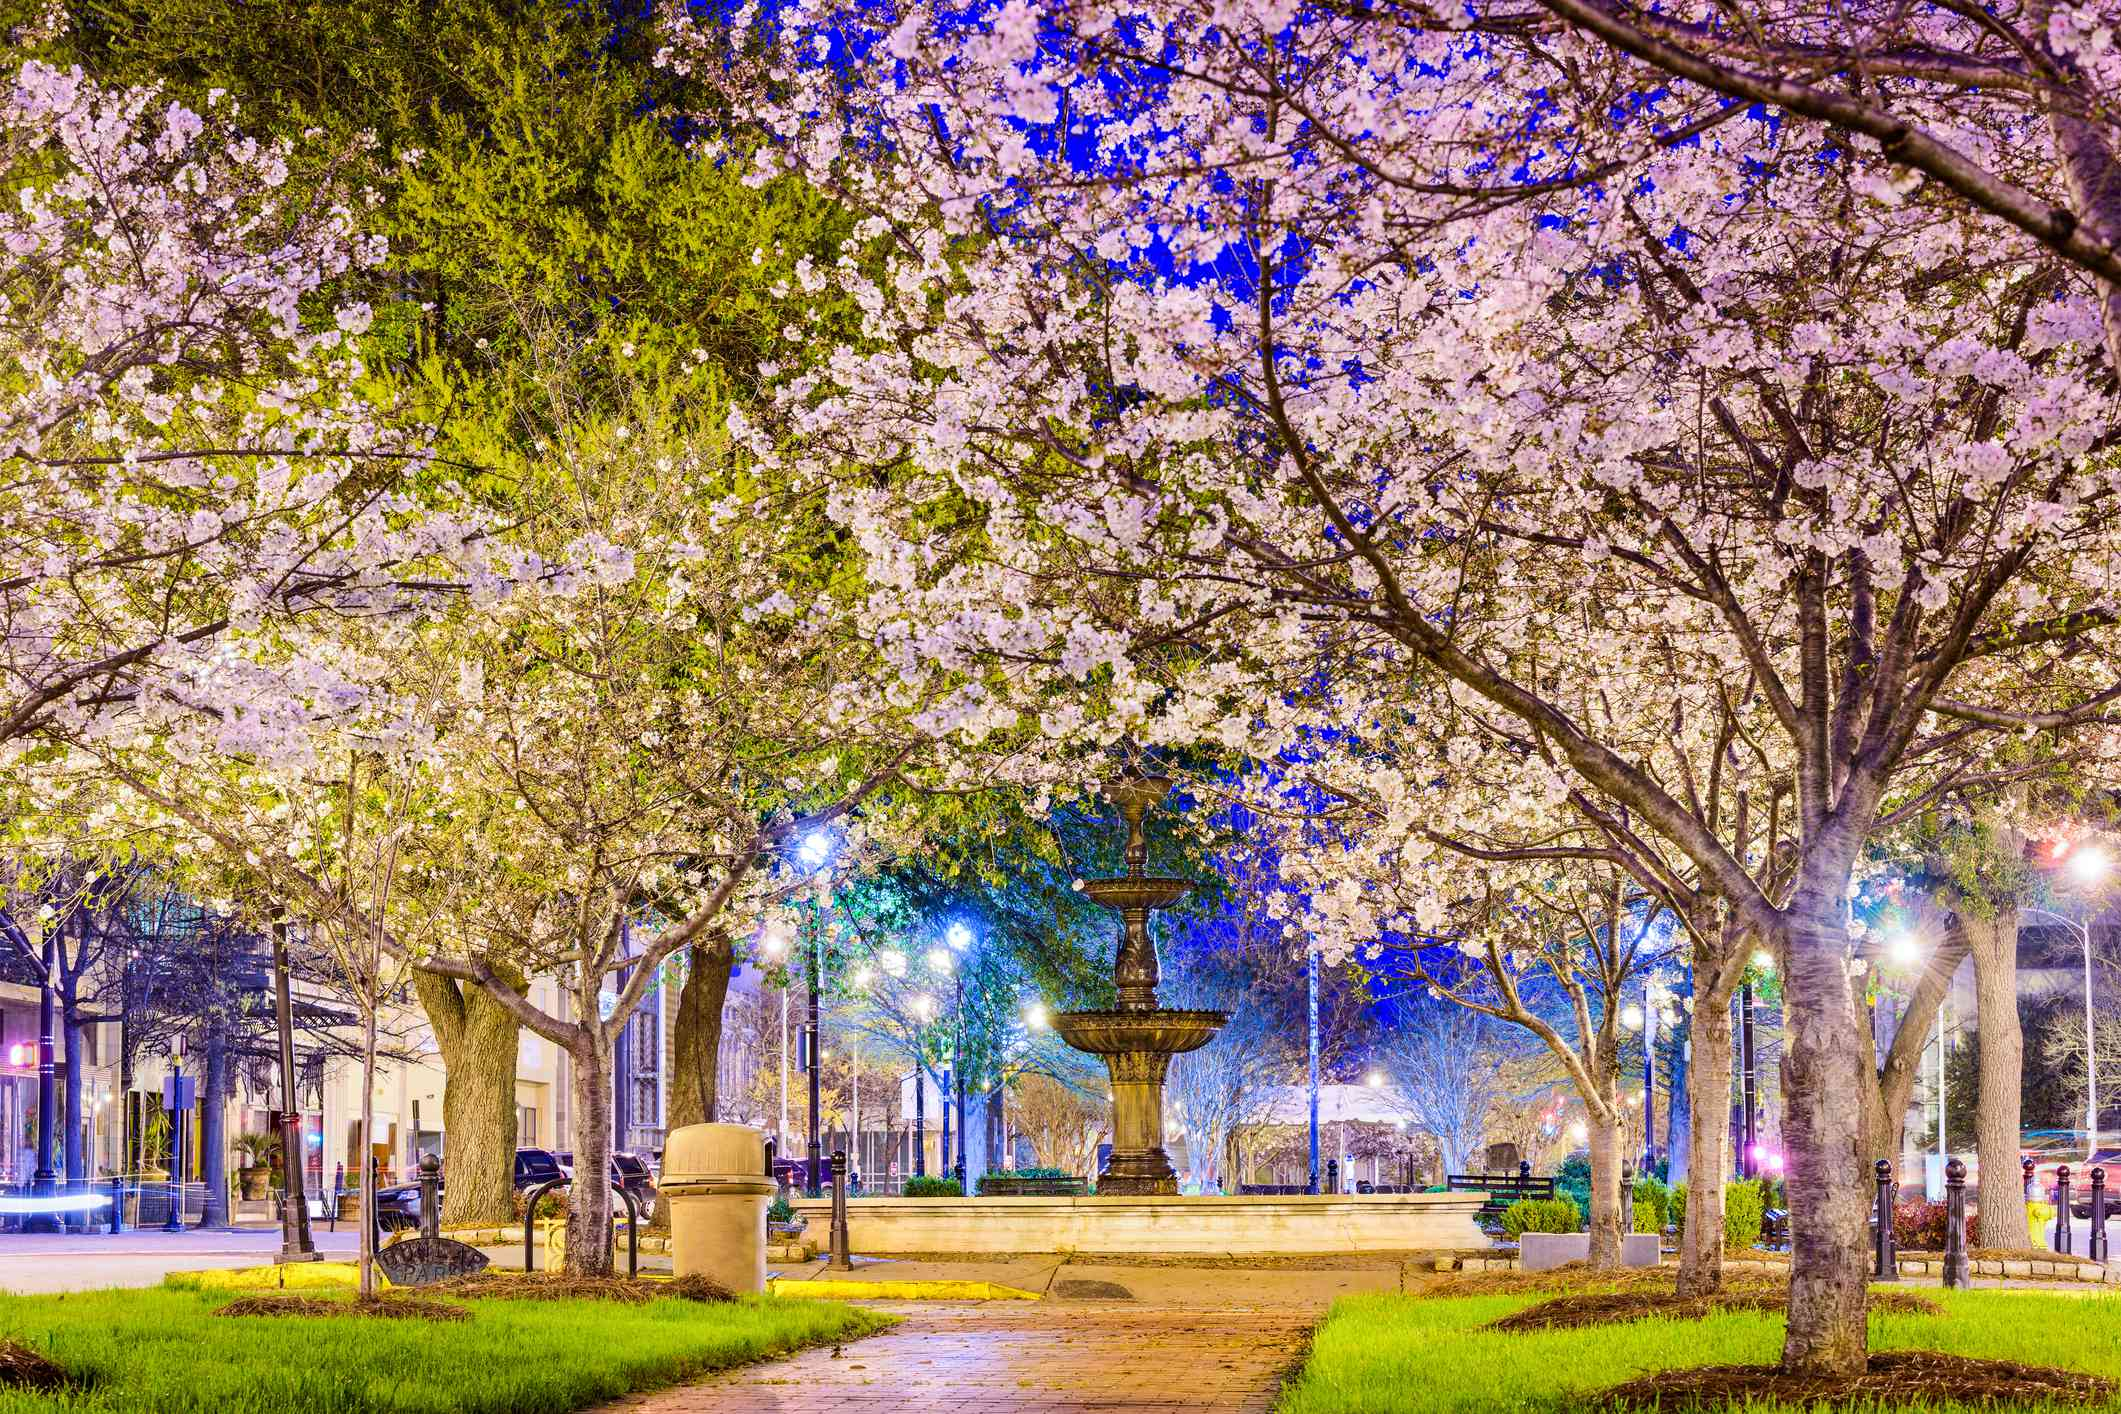 Cherry blossom trees in bloom in small patches of green grass along a pathway in downtown Macon, Georgia at twilight